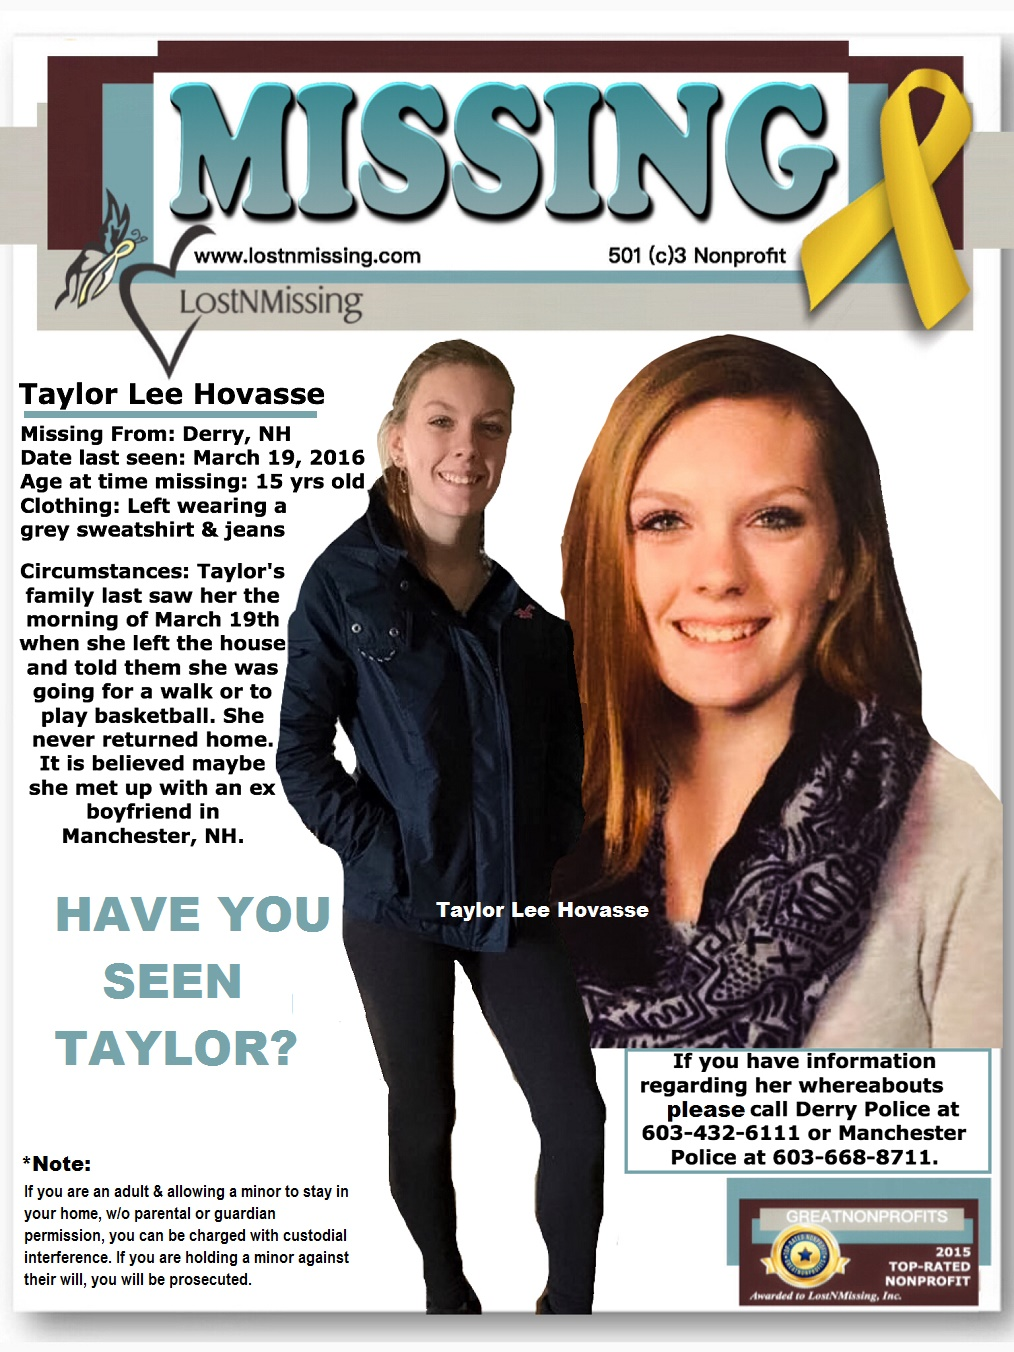 Missing 15 Year Old Girl Found: LostNMissing, Inc: Missing: Taylor Lee Hovasse,15